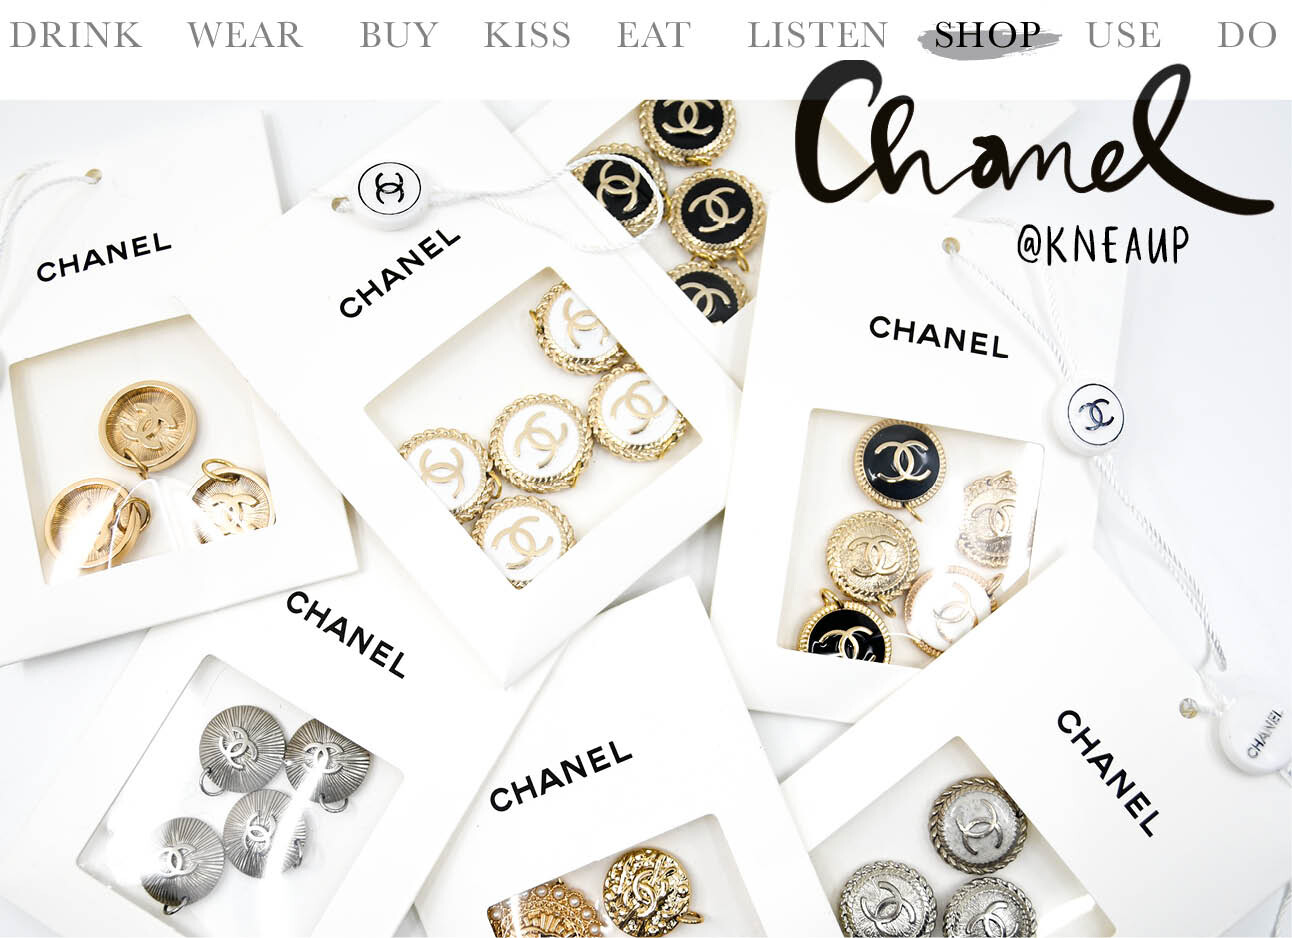 Today we shop vintage Chanel knopen